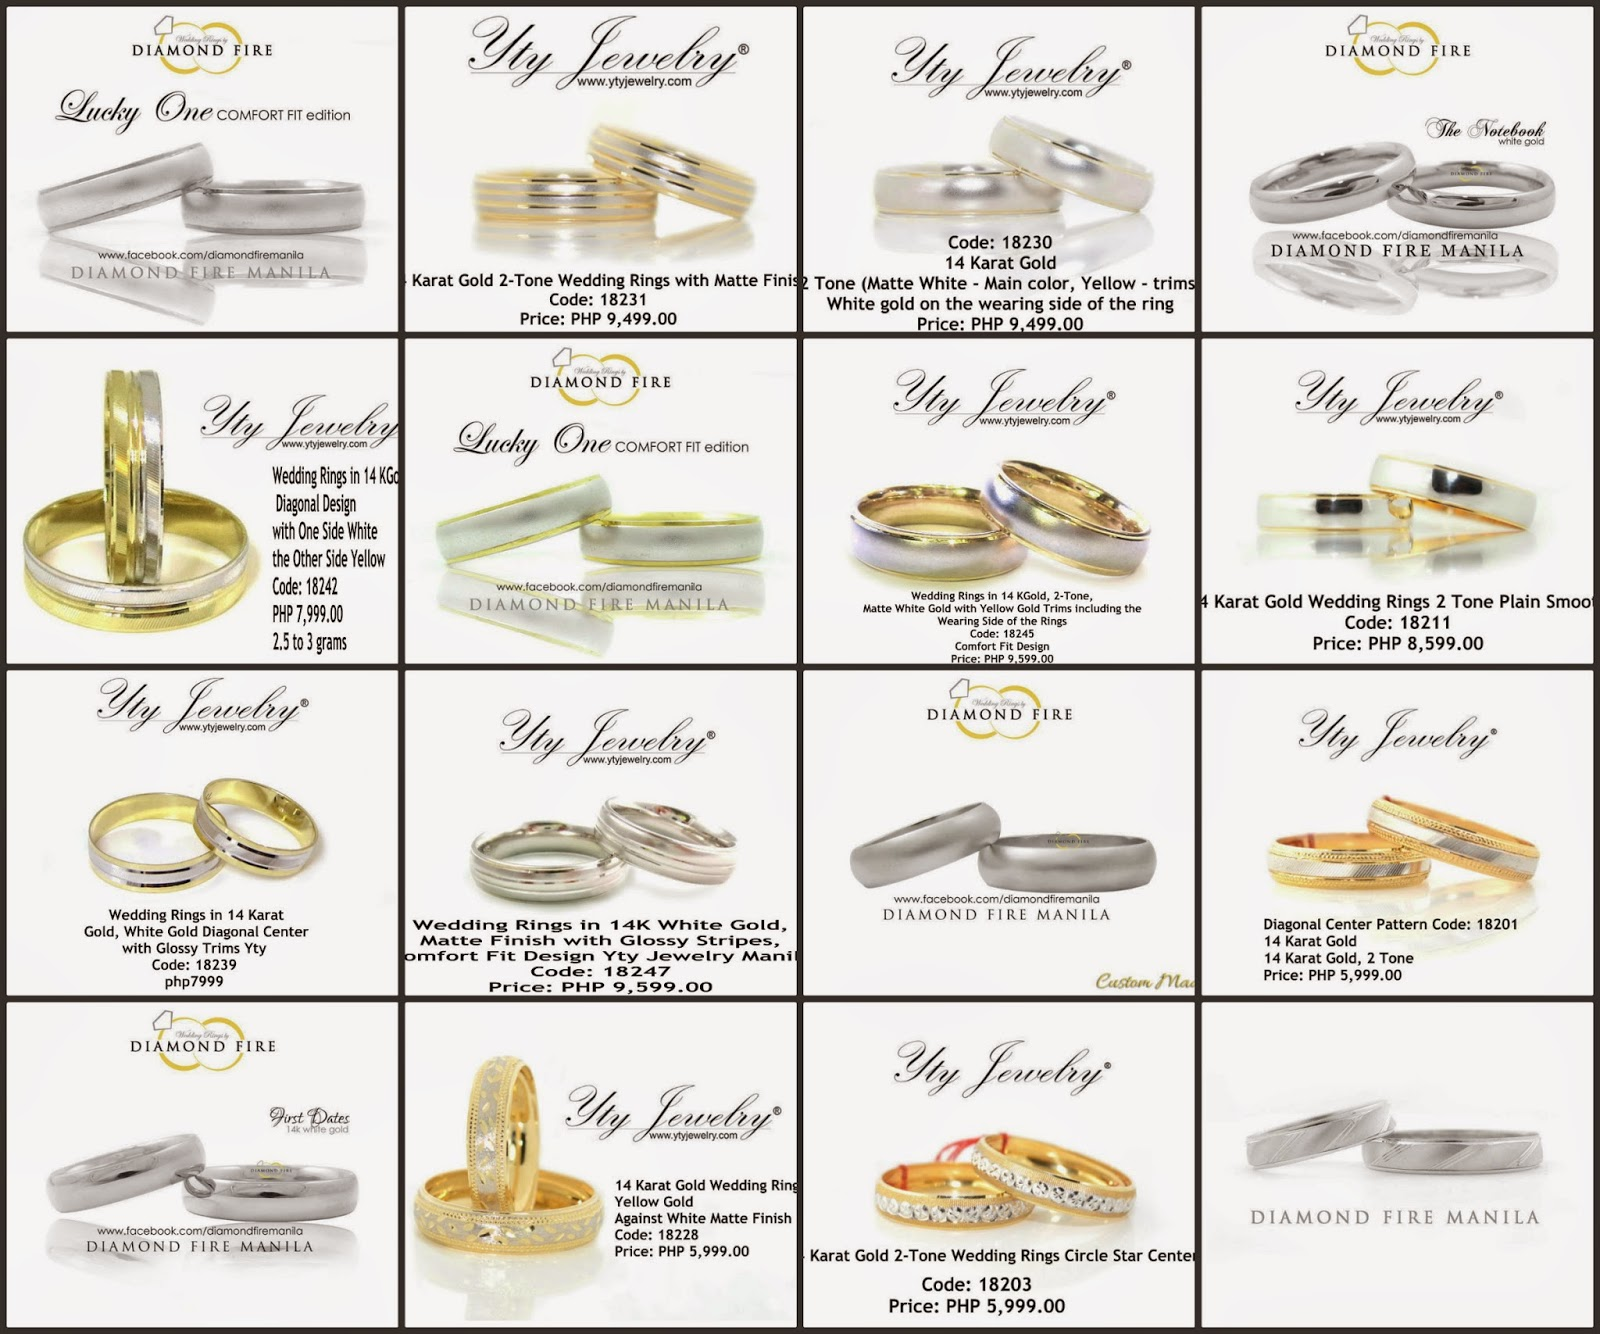 affordable wedding ring in ongpin affordable wedding rings Affordable wedding ring in ongpin